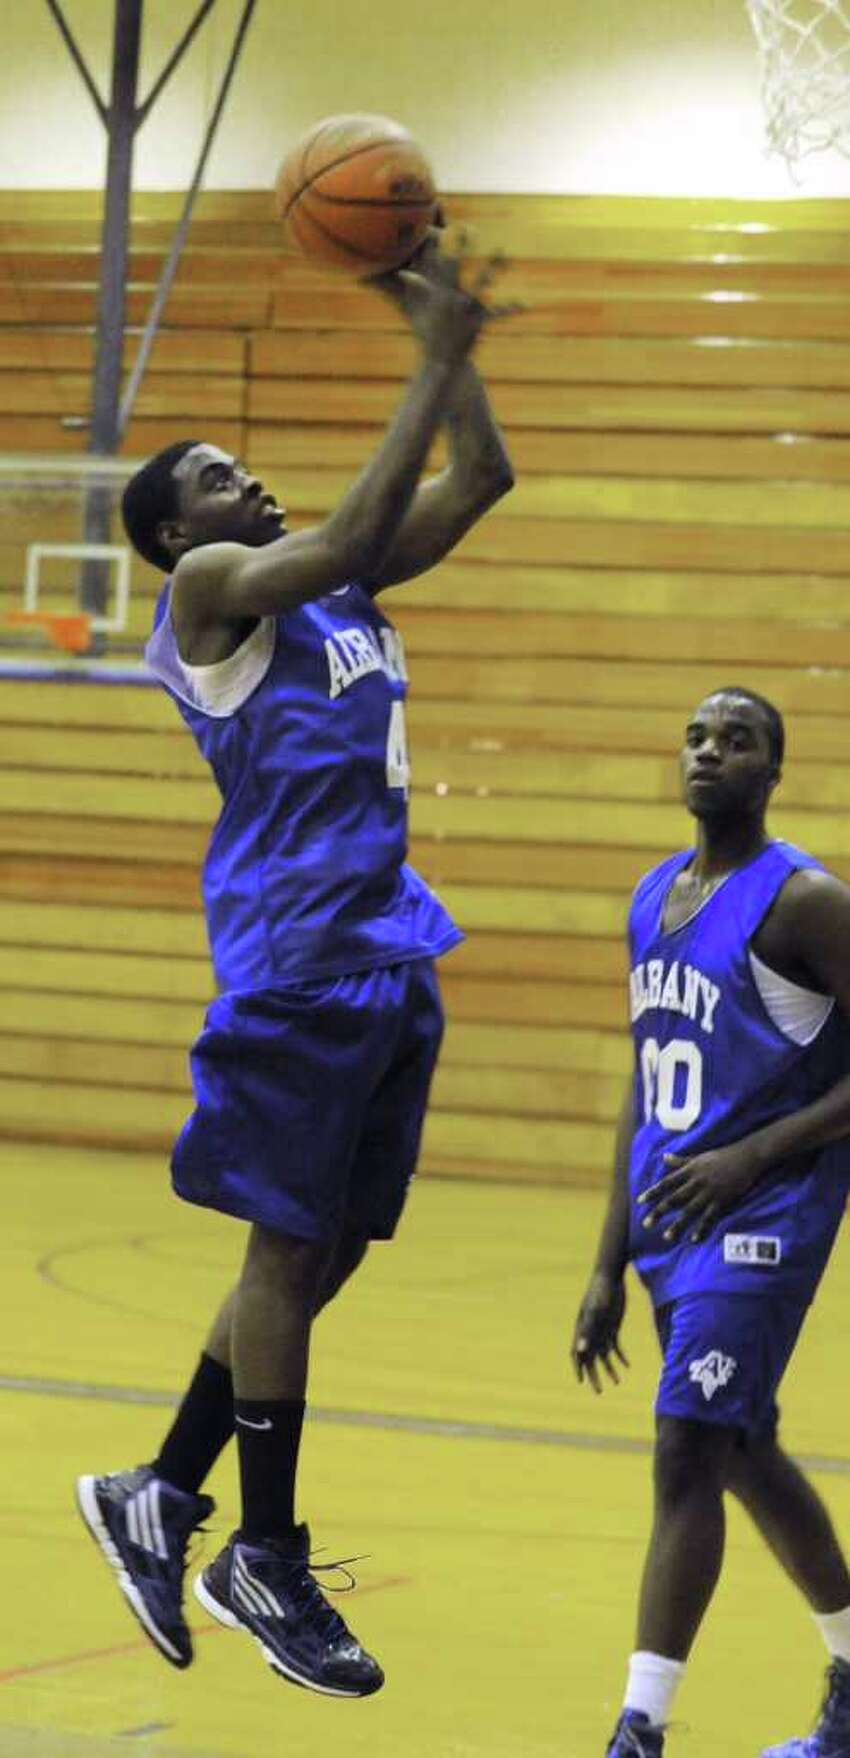 Albany High School basketball player Daquan Johnson shoots the ball during practice with the team Monday, Dec. 19, 2011 in Albany, N.Y. (Lori Van Buren / Times Union)